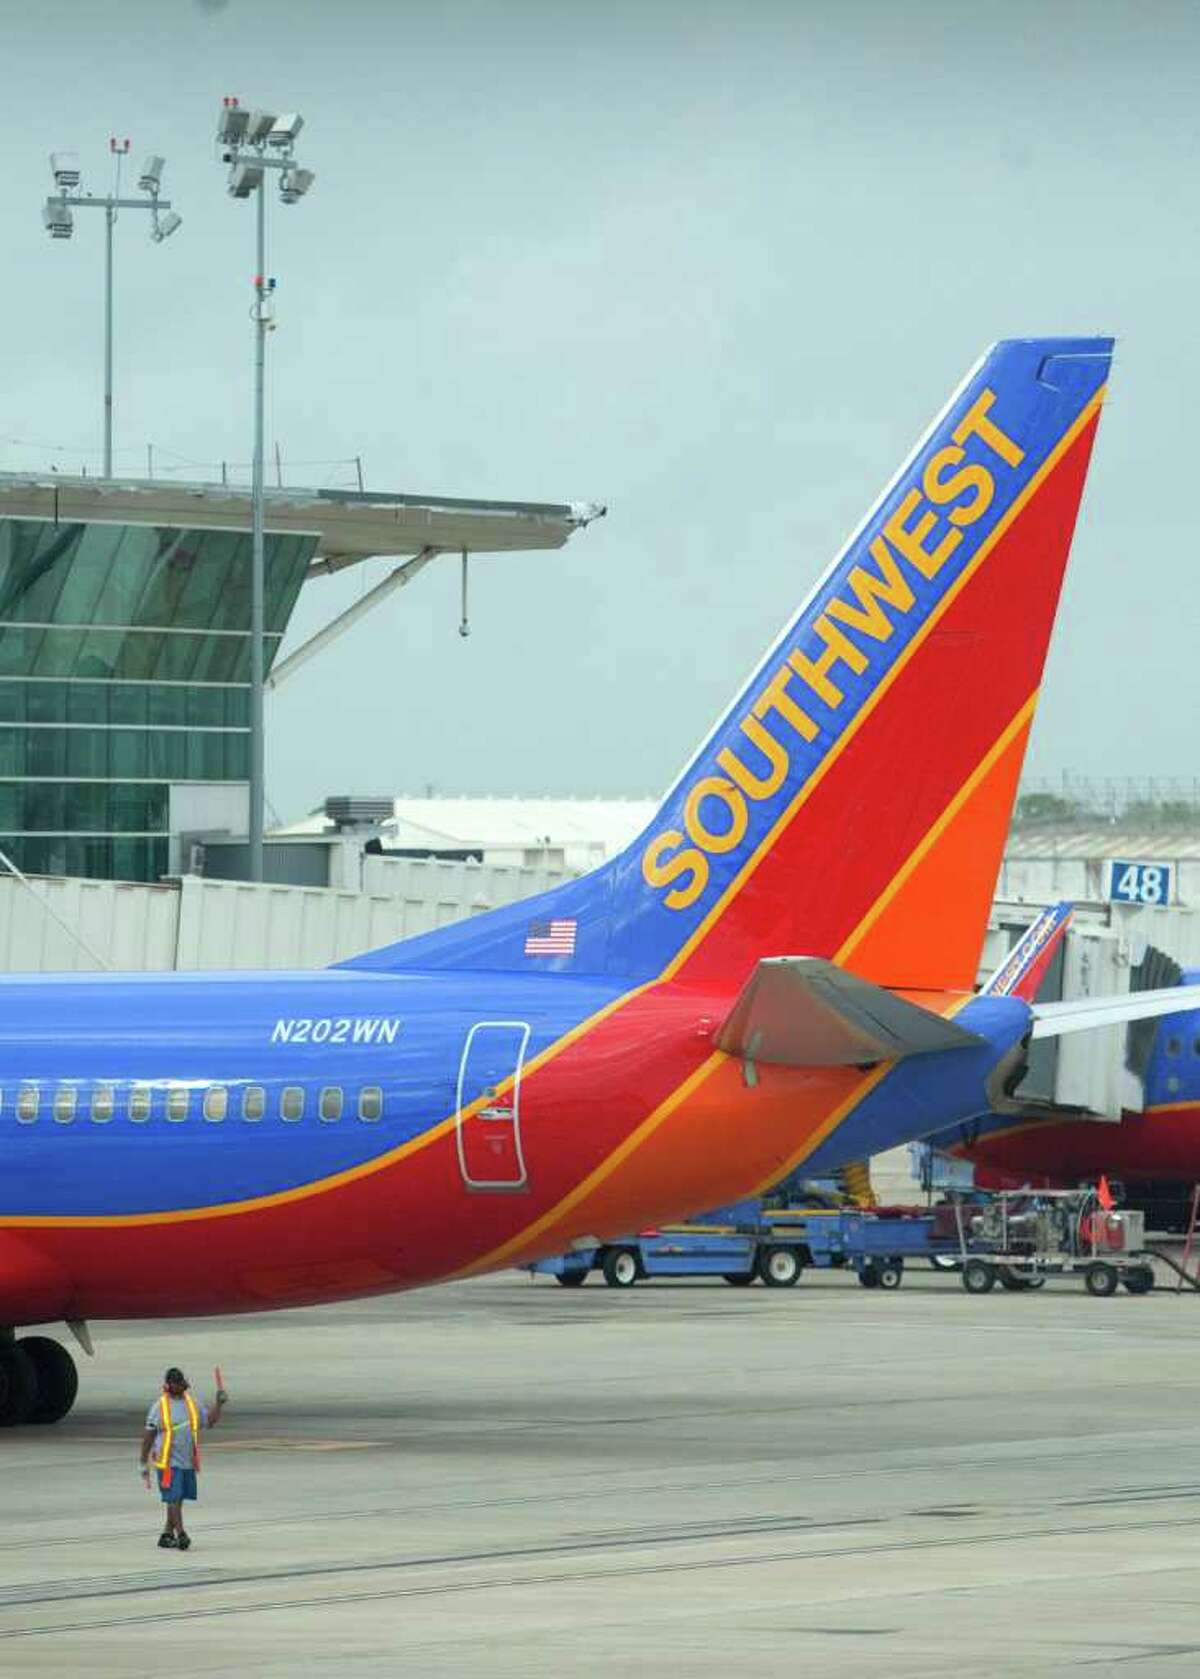 A Southwest Airlines airplane is seen leaving William P. Hobby Airport on Wednesday. If the airline gets its way, Southwest jets could be landing in Mexico.